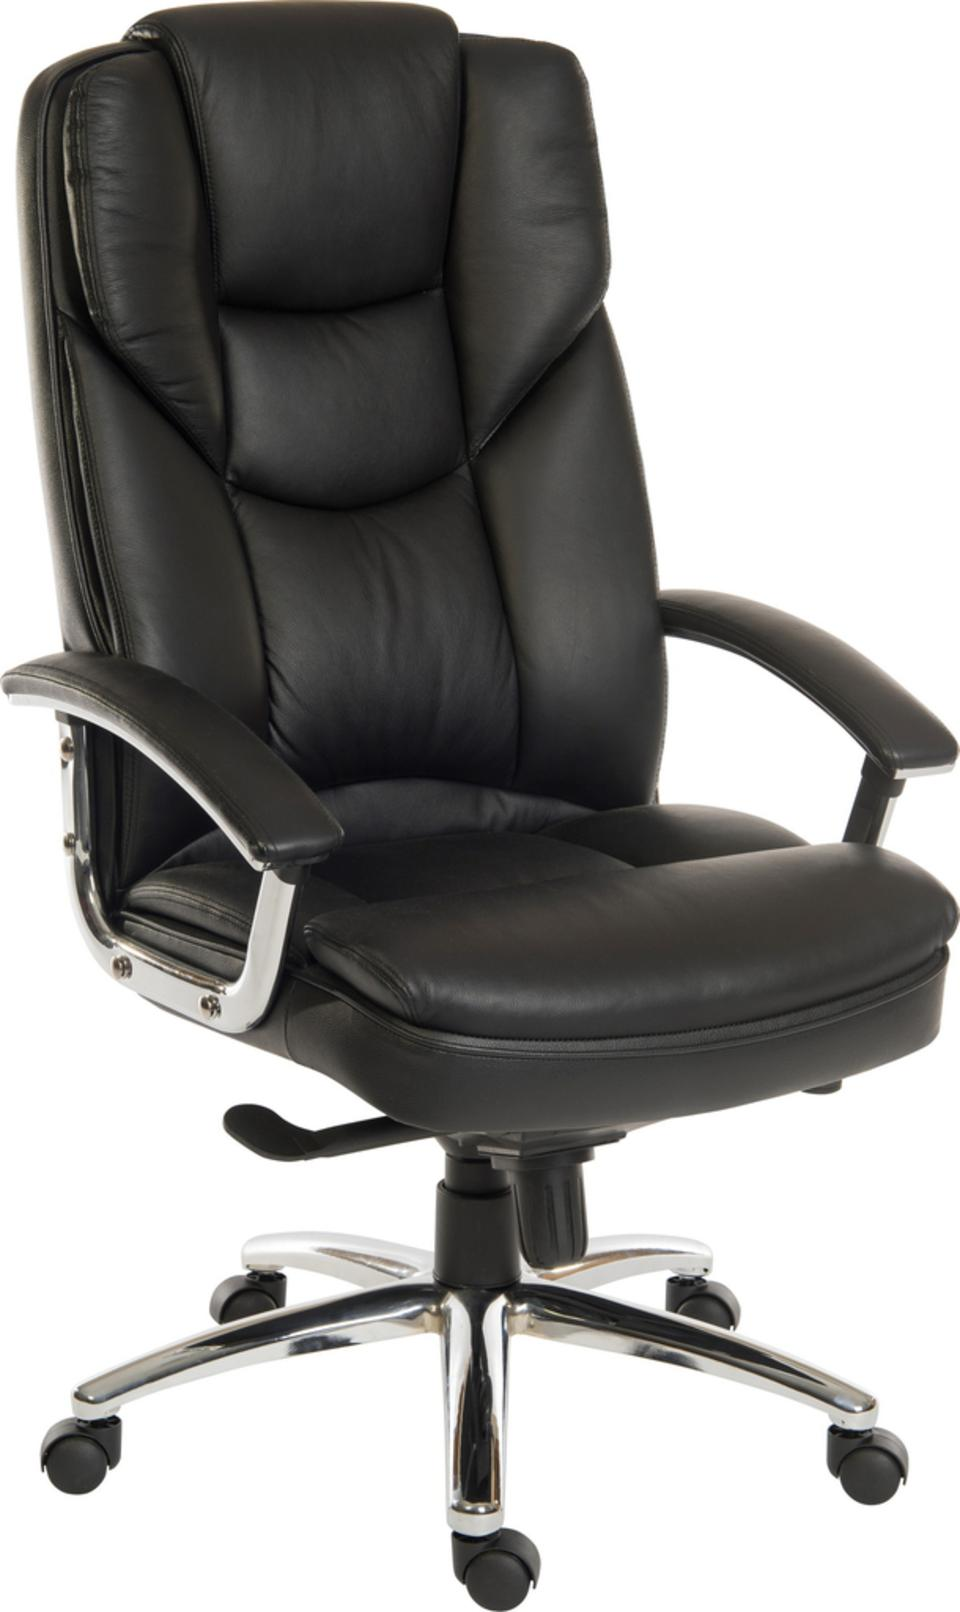 Skyline Leather Executive Chair